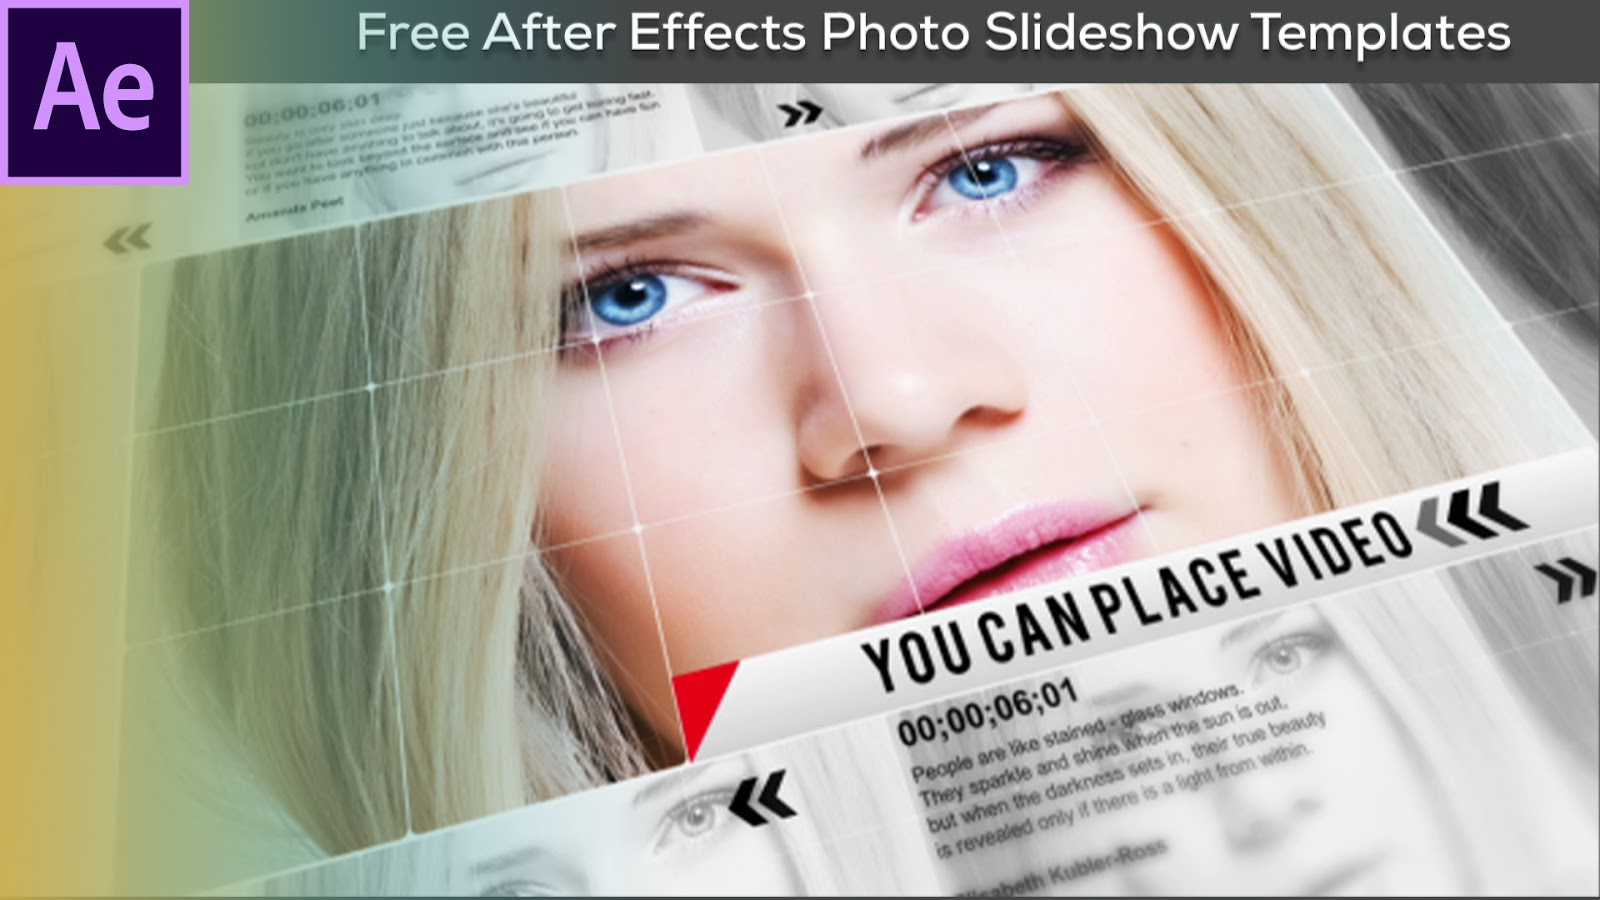 Free After Effects Photo Slideshow Templates - After Effects Template Free Download